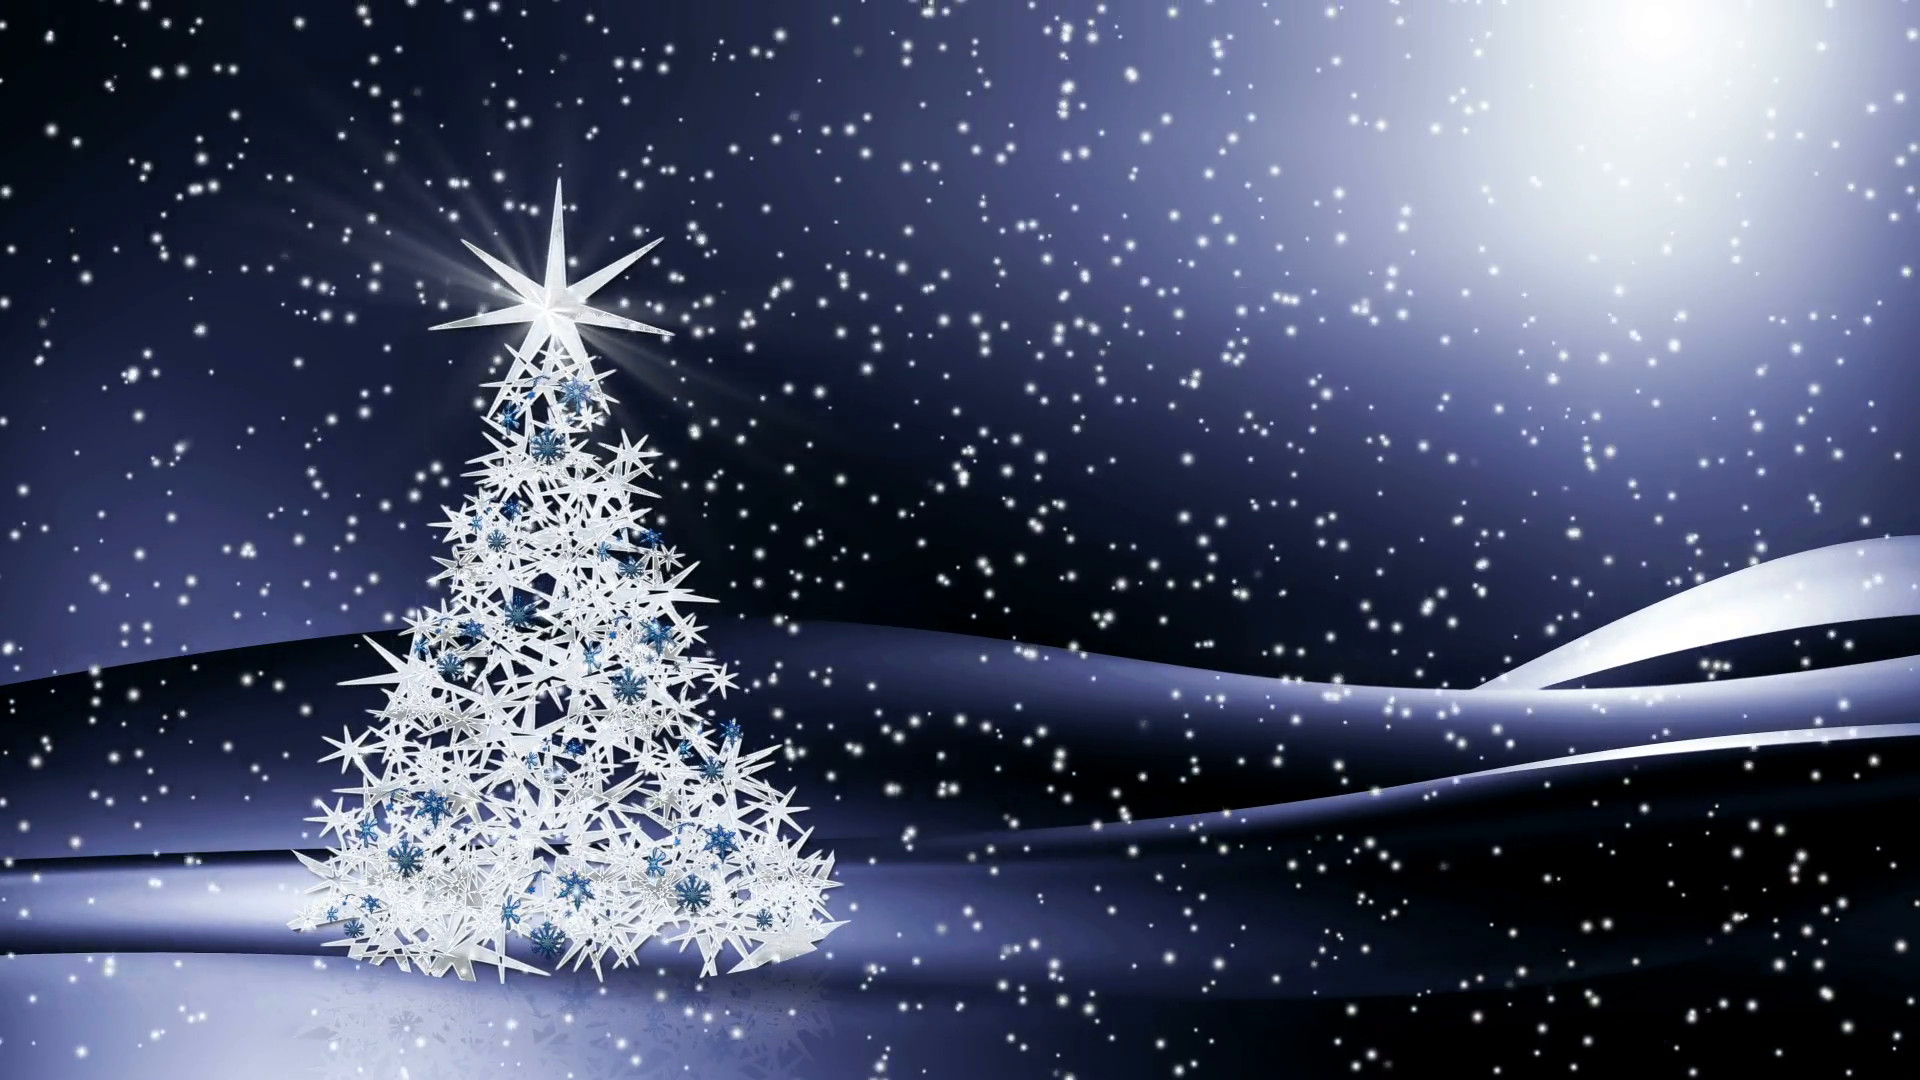 Free Animated Snow Fall Wallpaper Christmas Scenery Backgrounds 183 ① Wallpapertag